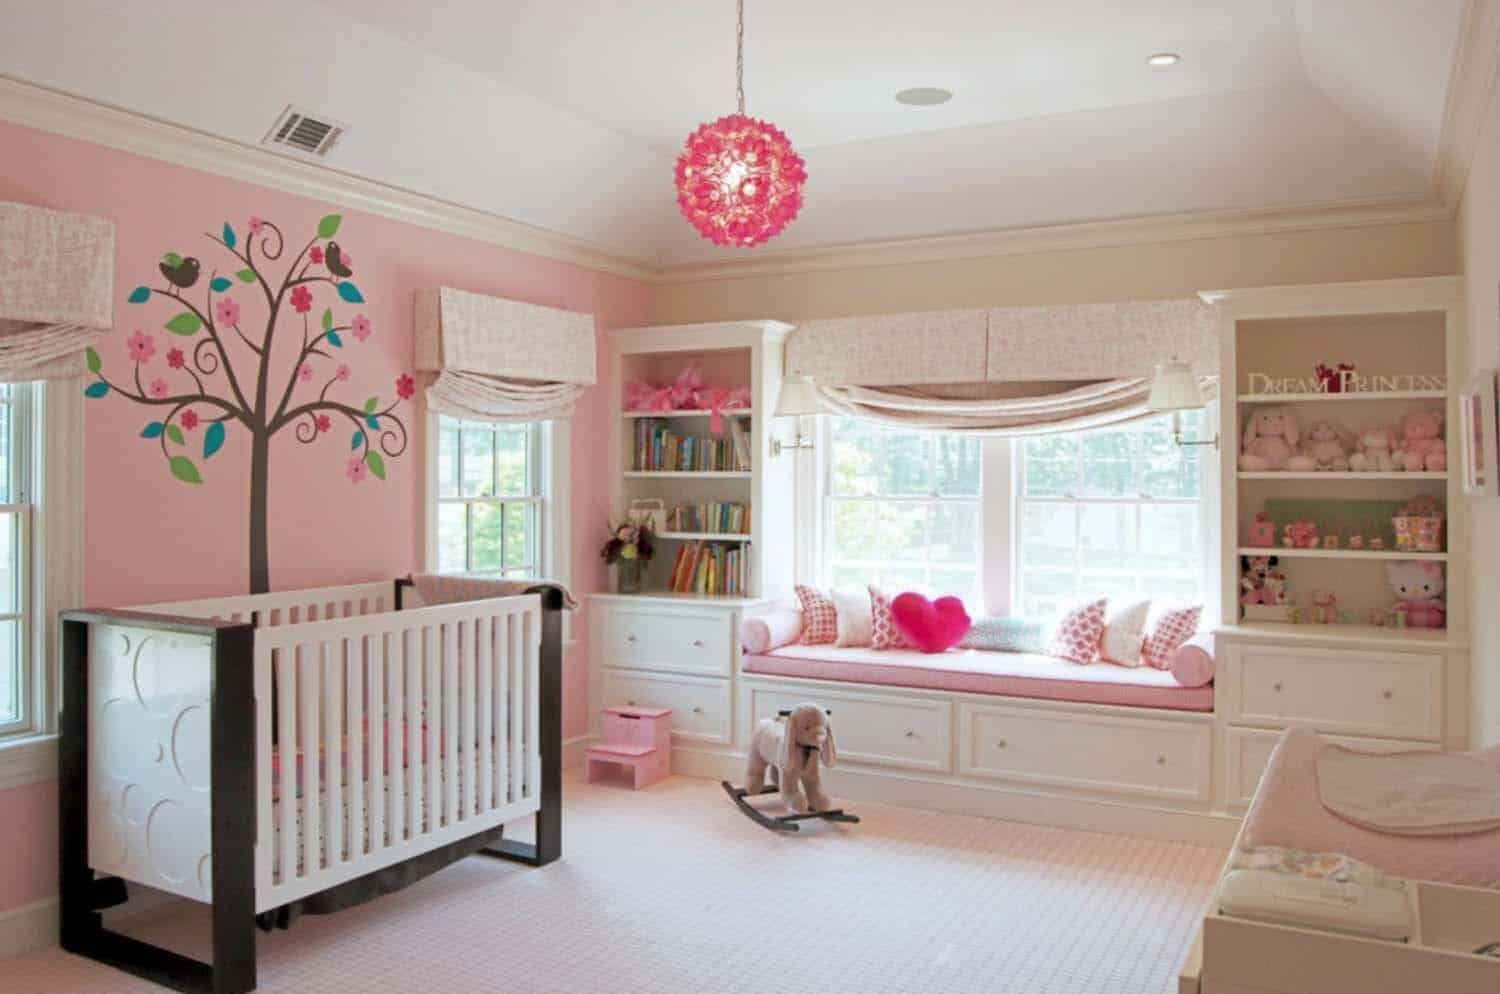 Stylish Nursery Decorating Ideas-28-1 Kindesign